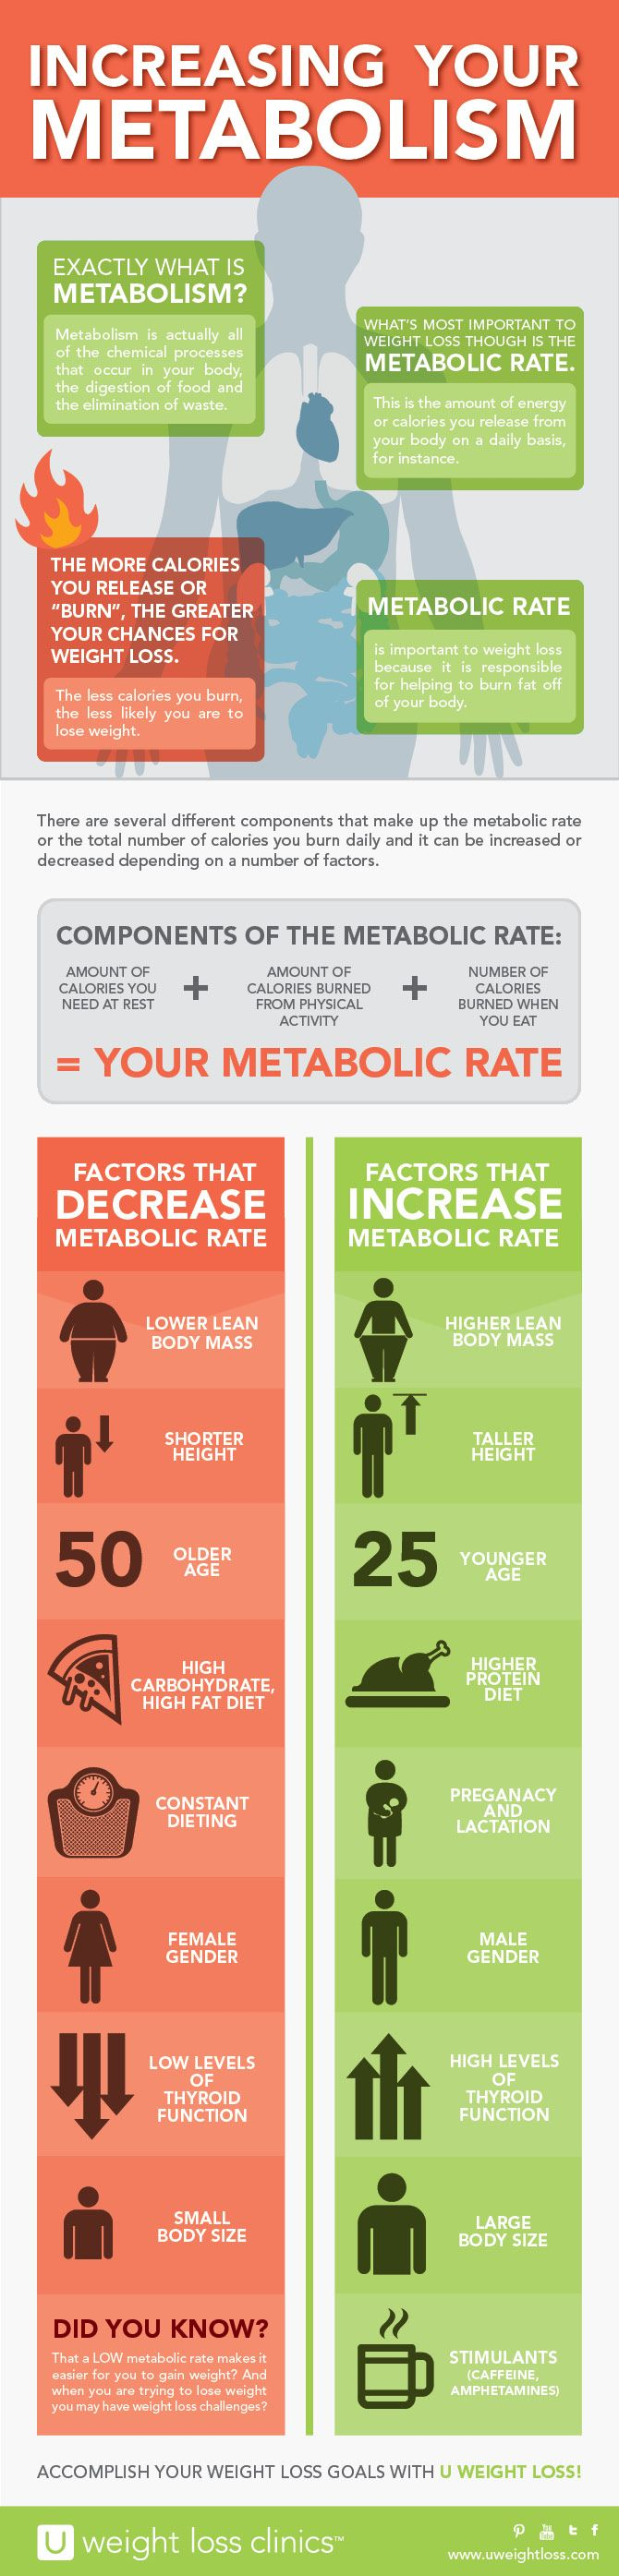 Increasing Your Metabolism Infographic #health #u_weight_loss